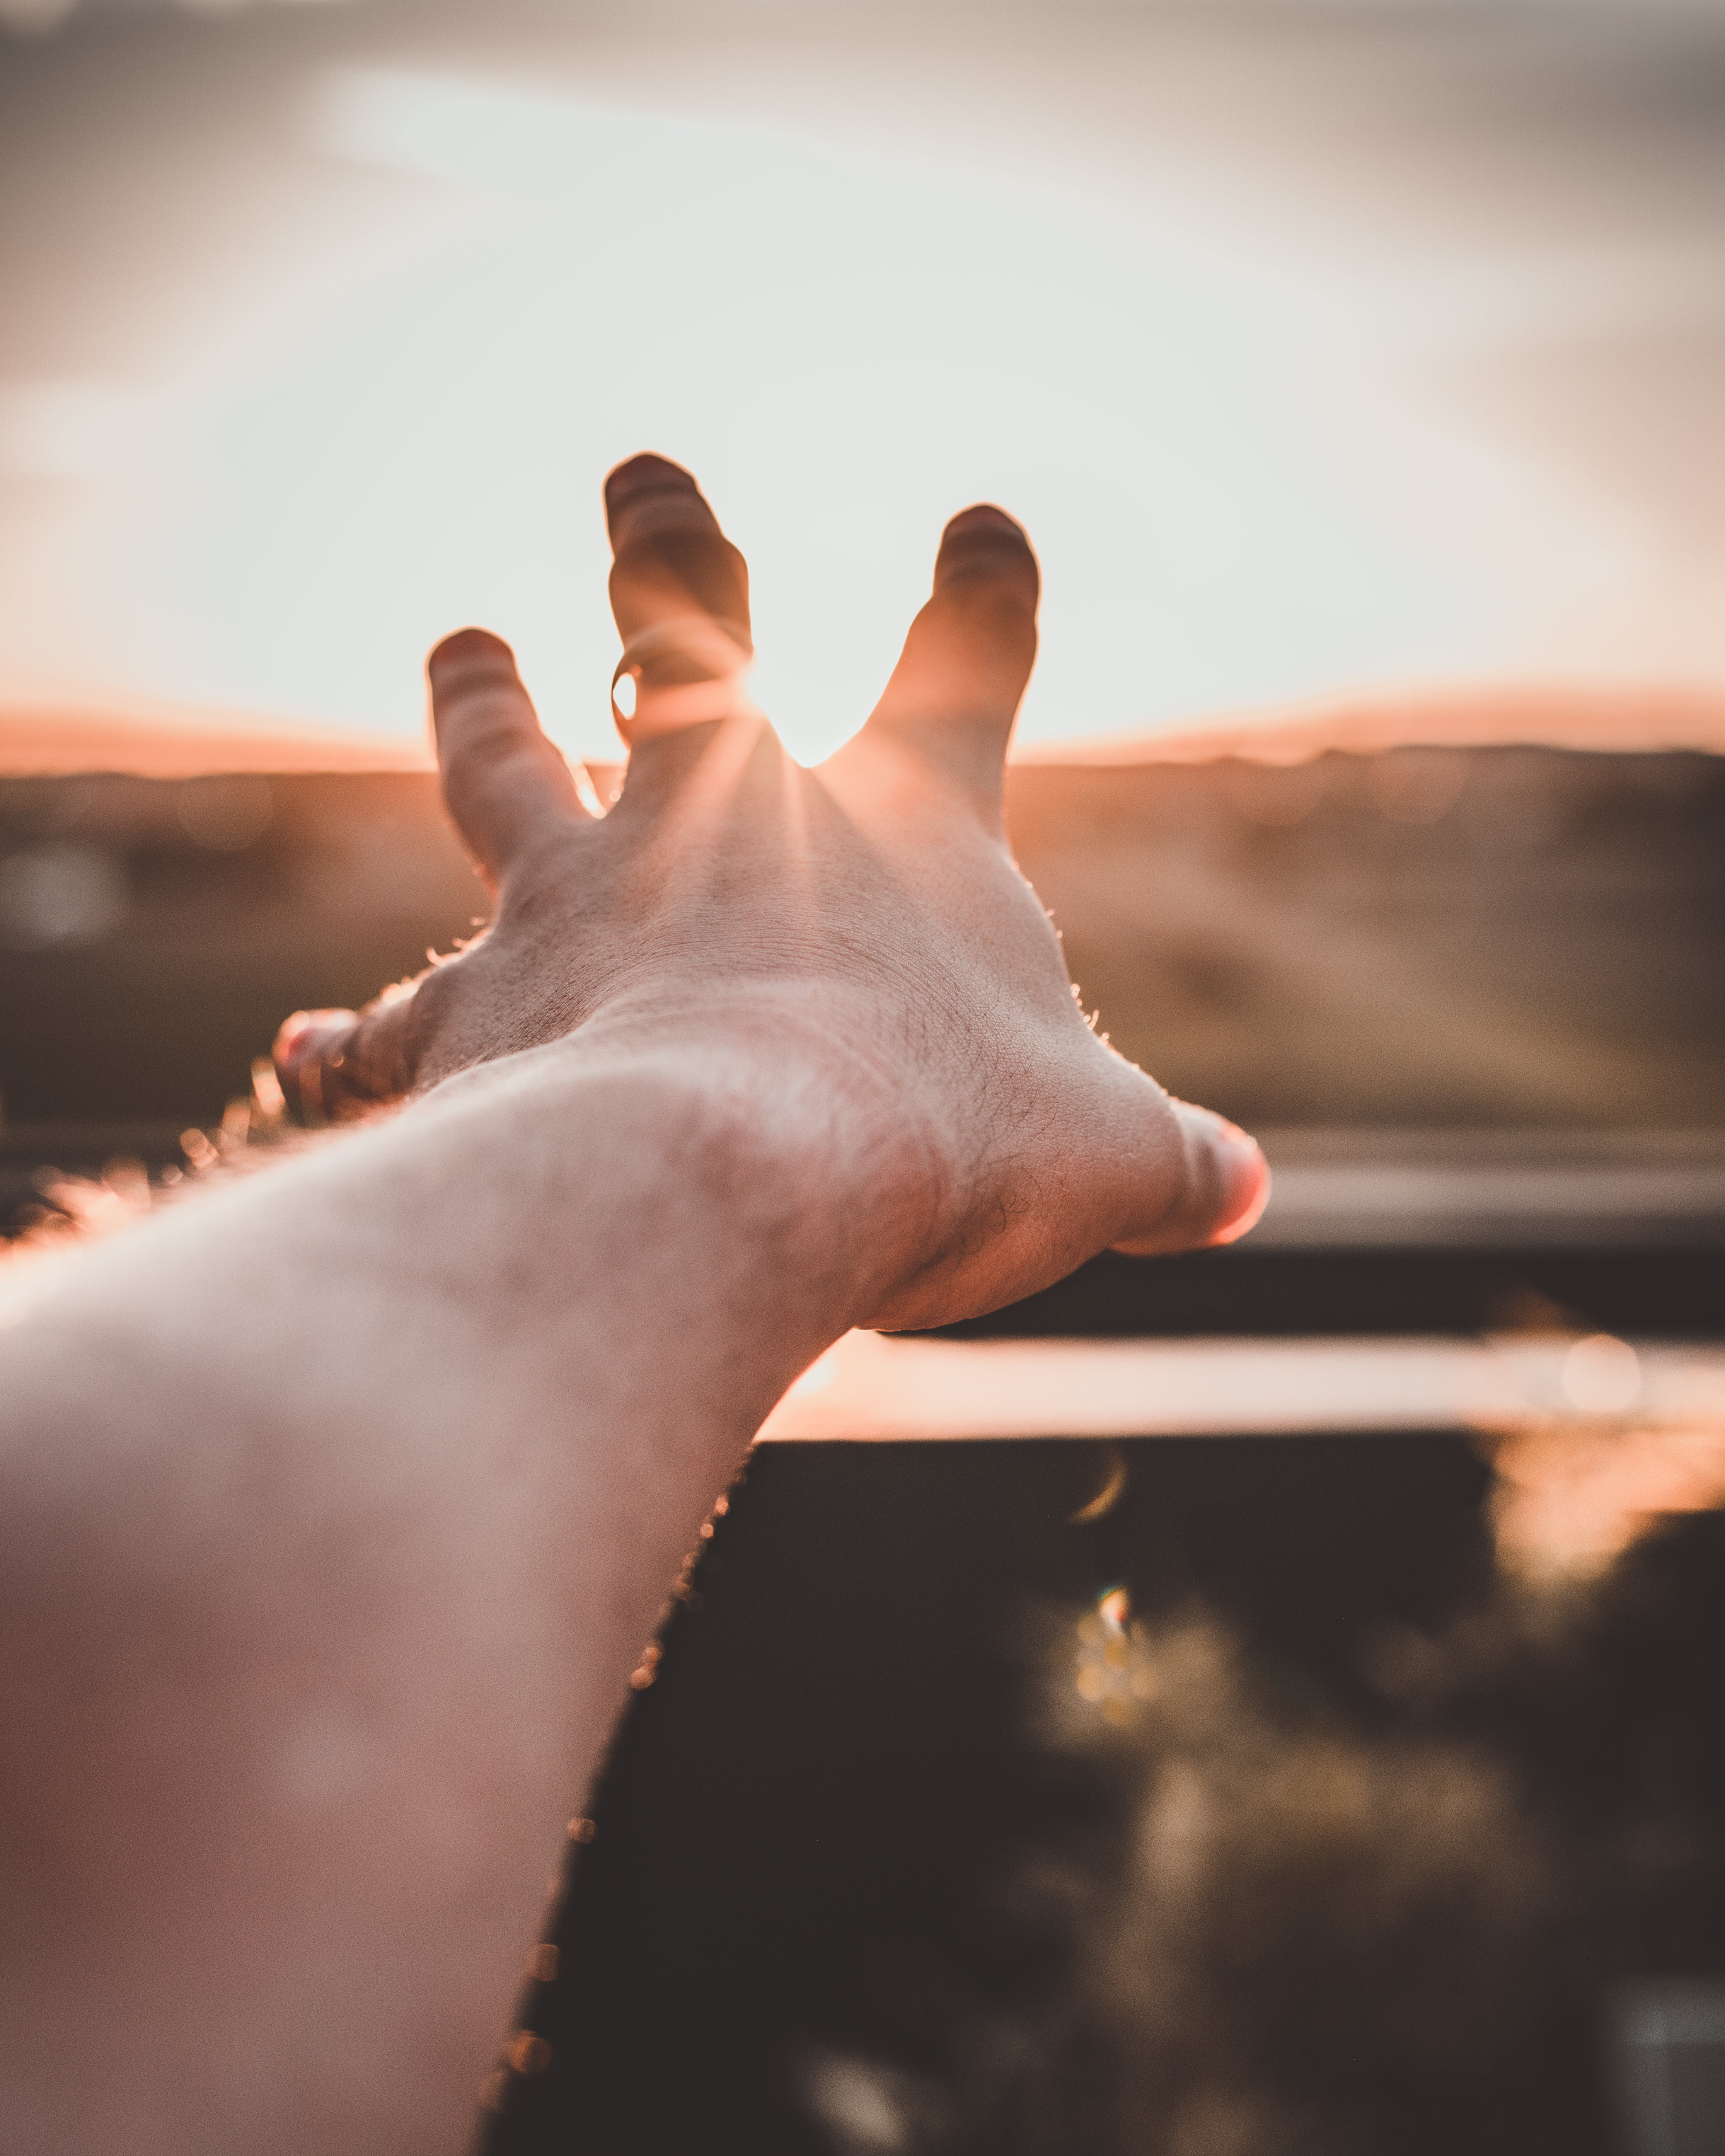 Close-Up Photo of Hand During Sunset